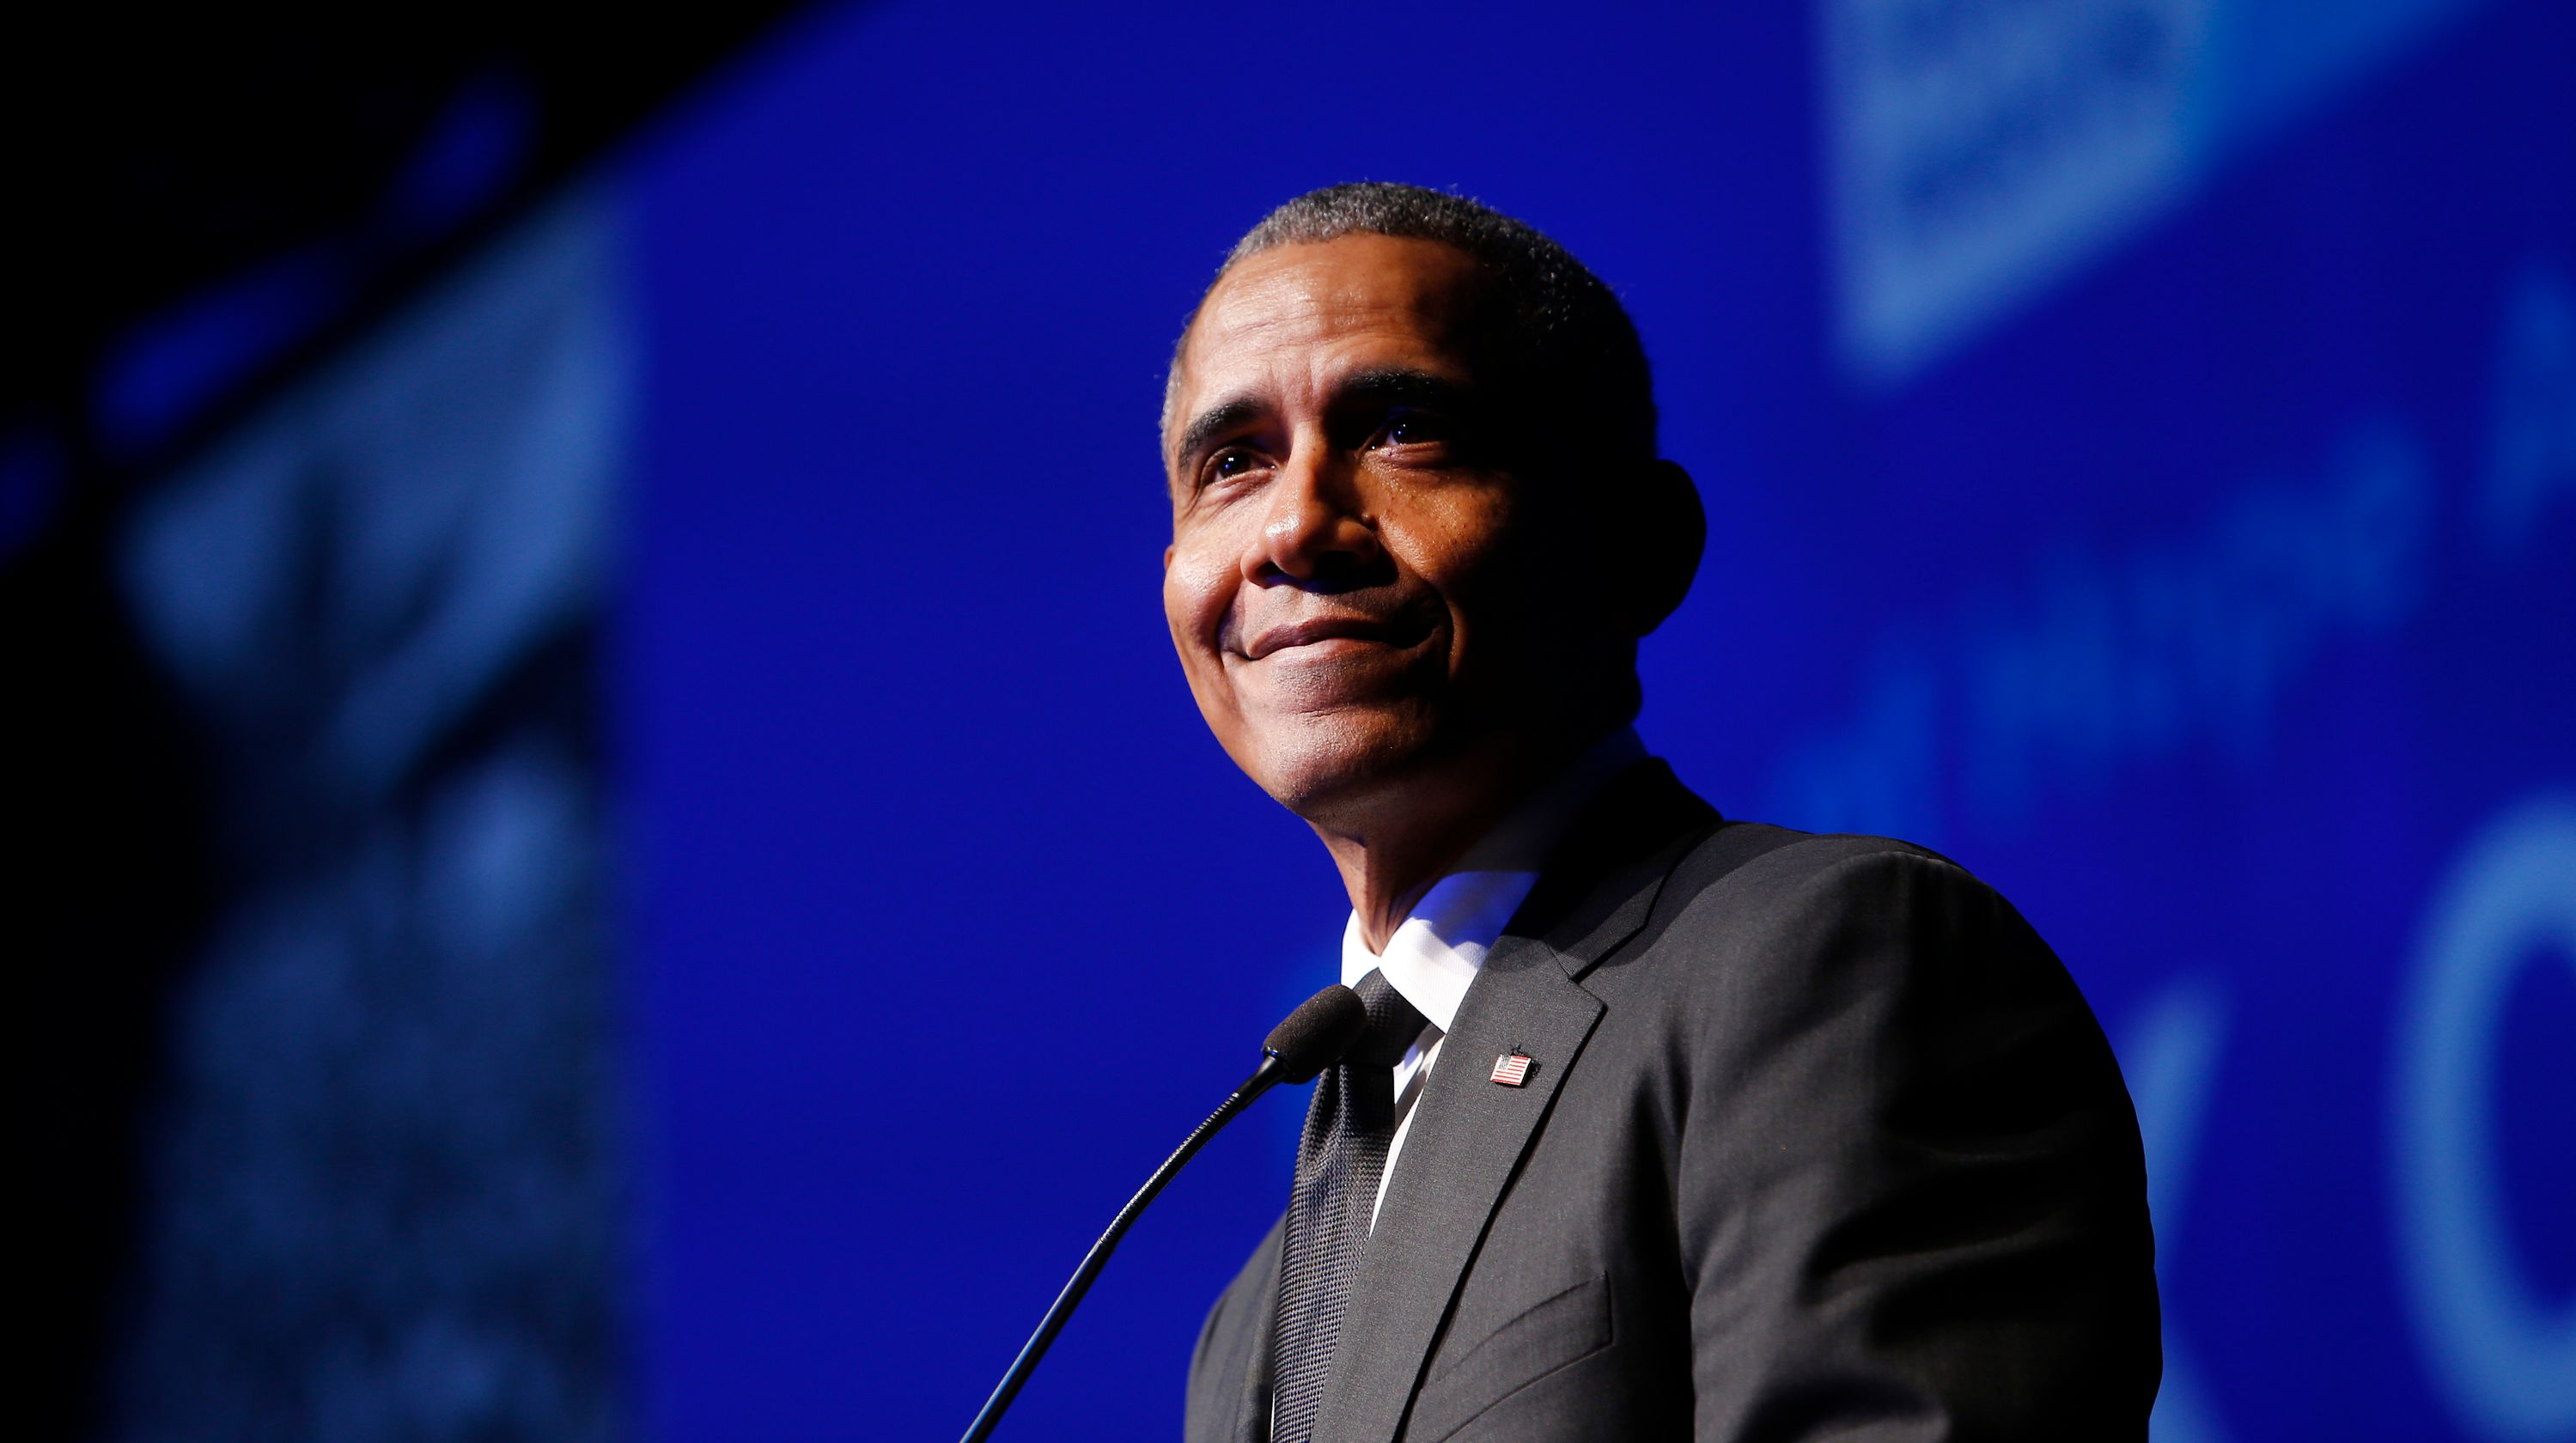 Barack Obama debuts on Billboard's R&B music chart with 'Hamilton' song